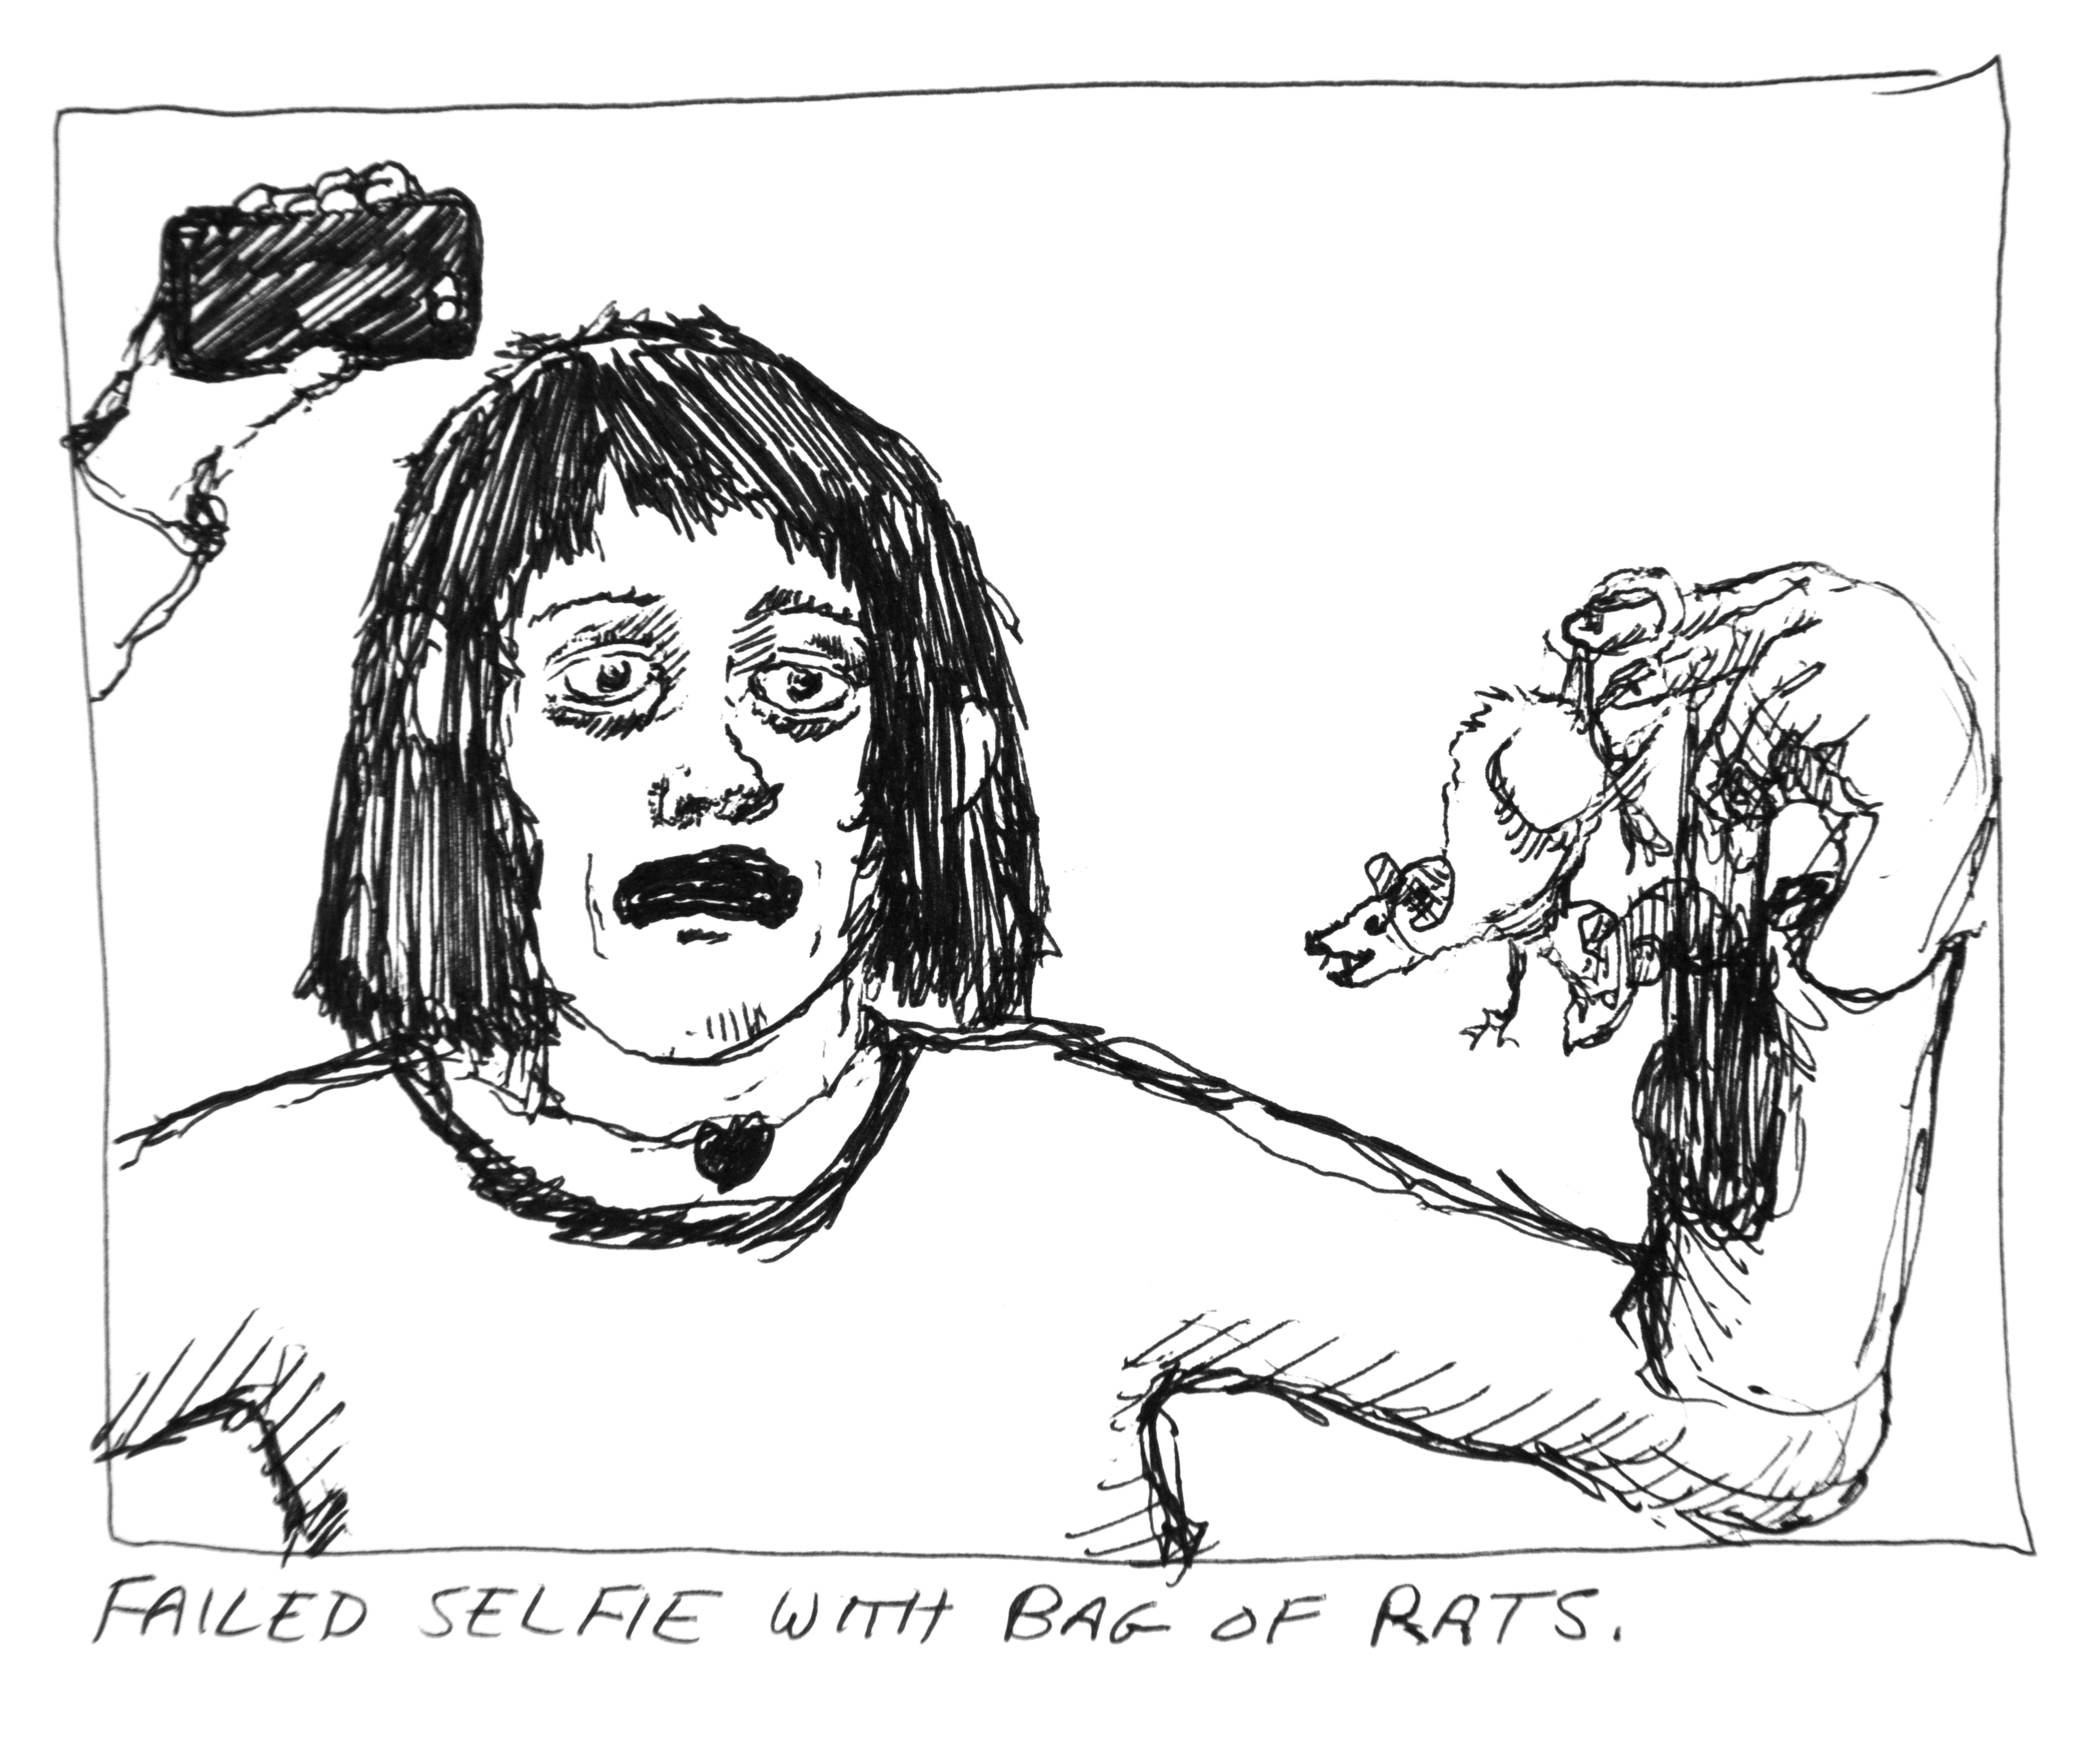 Selfie With Bag of Rats, 2017. Ink on paper. 10 x 10 inches.